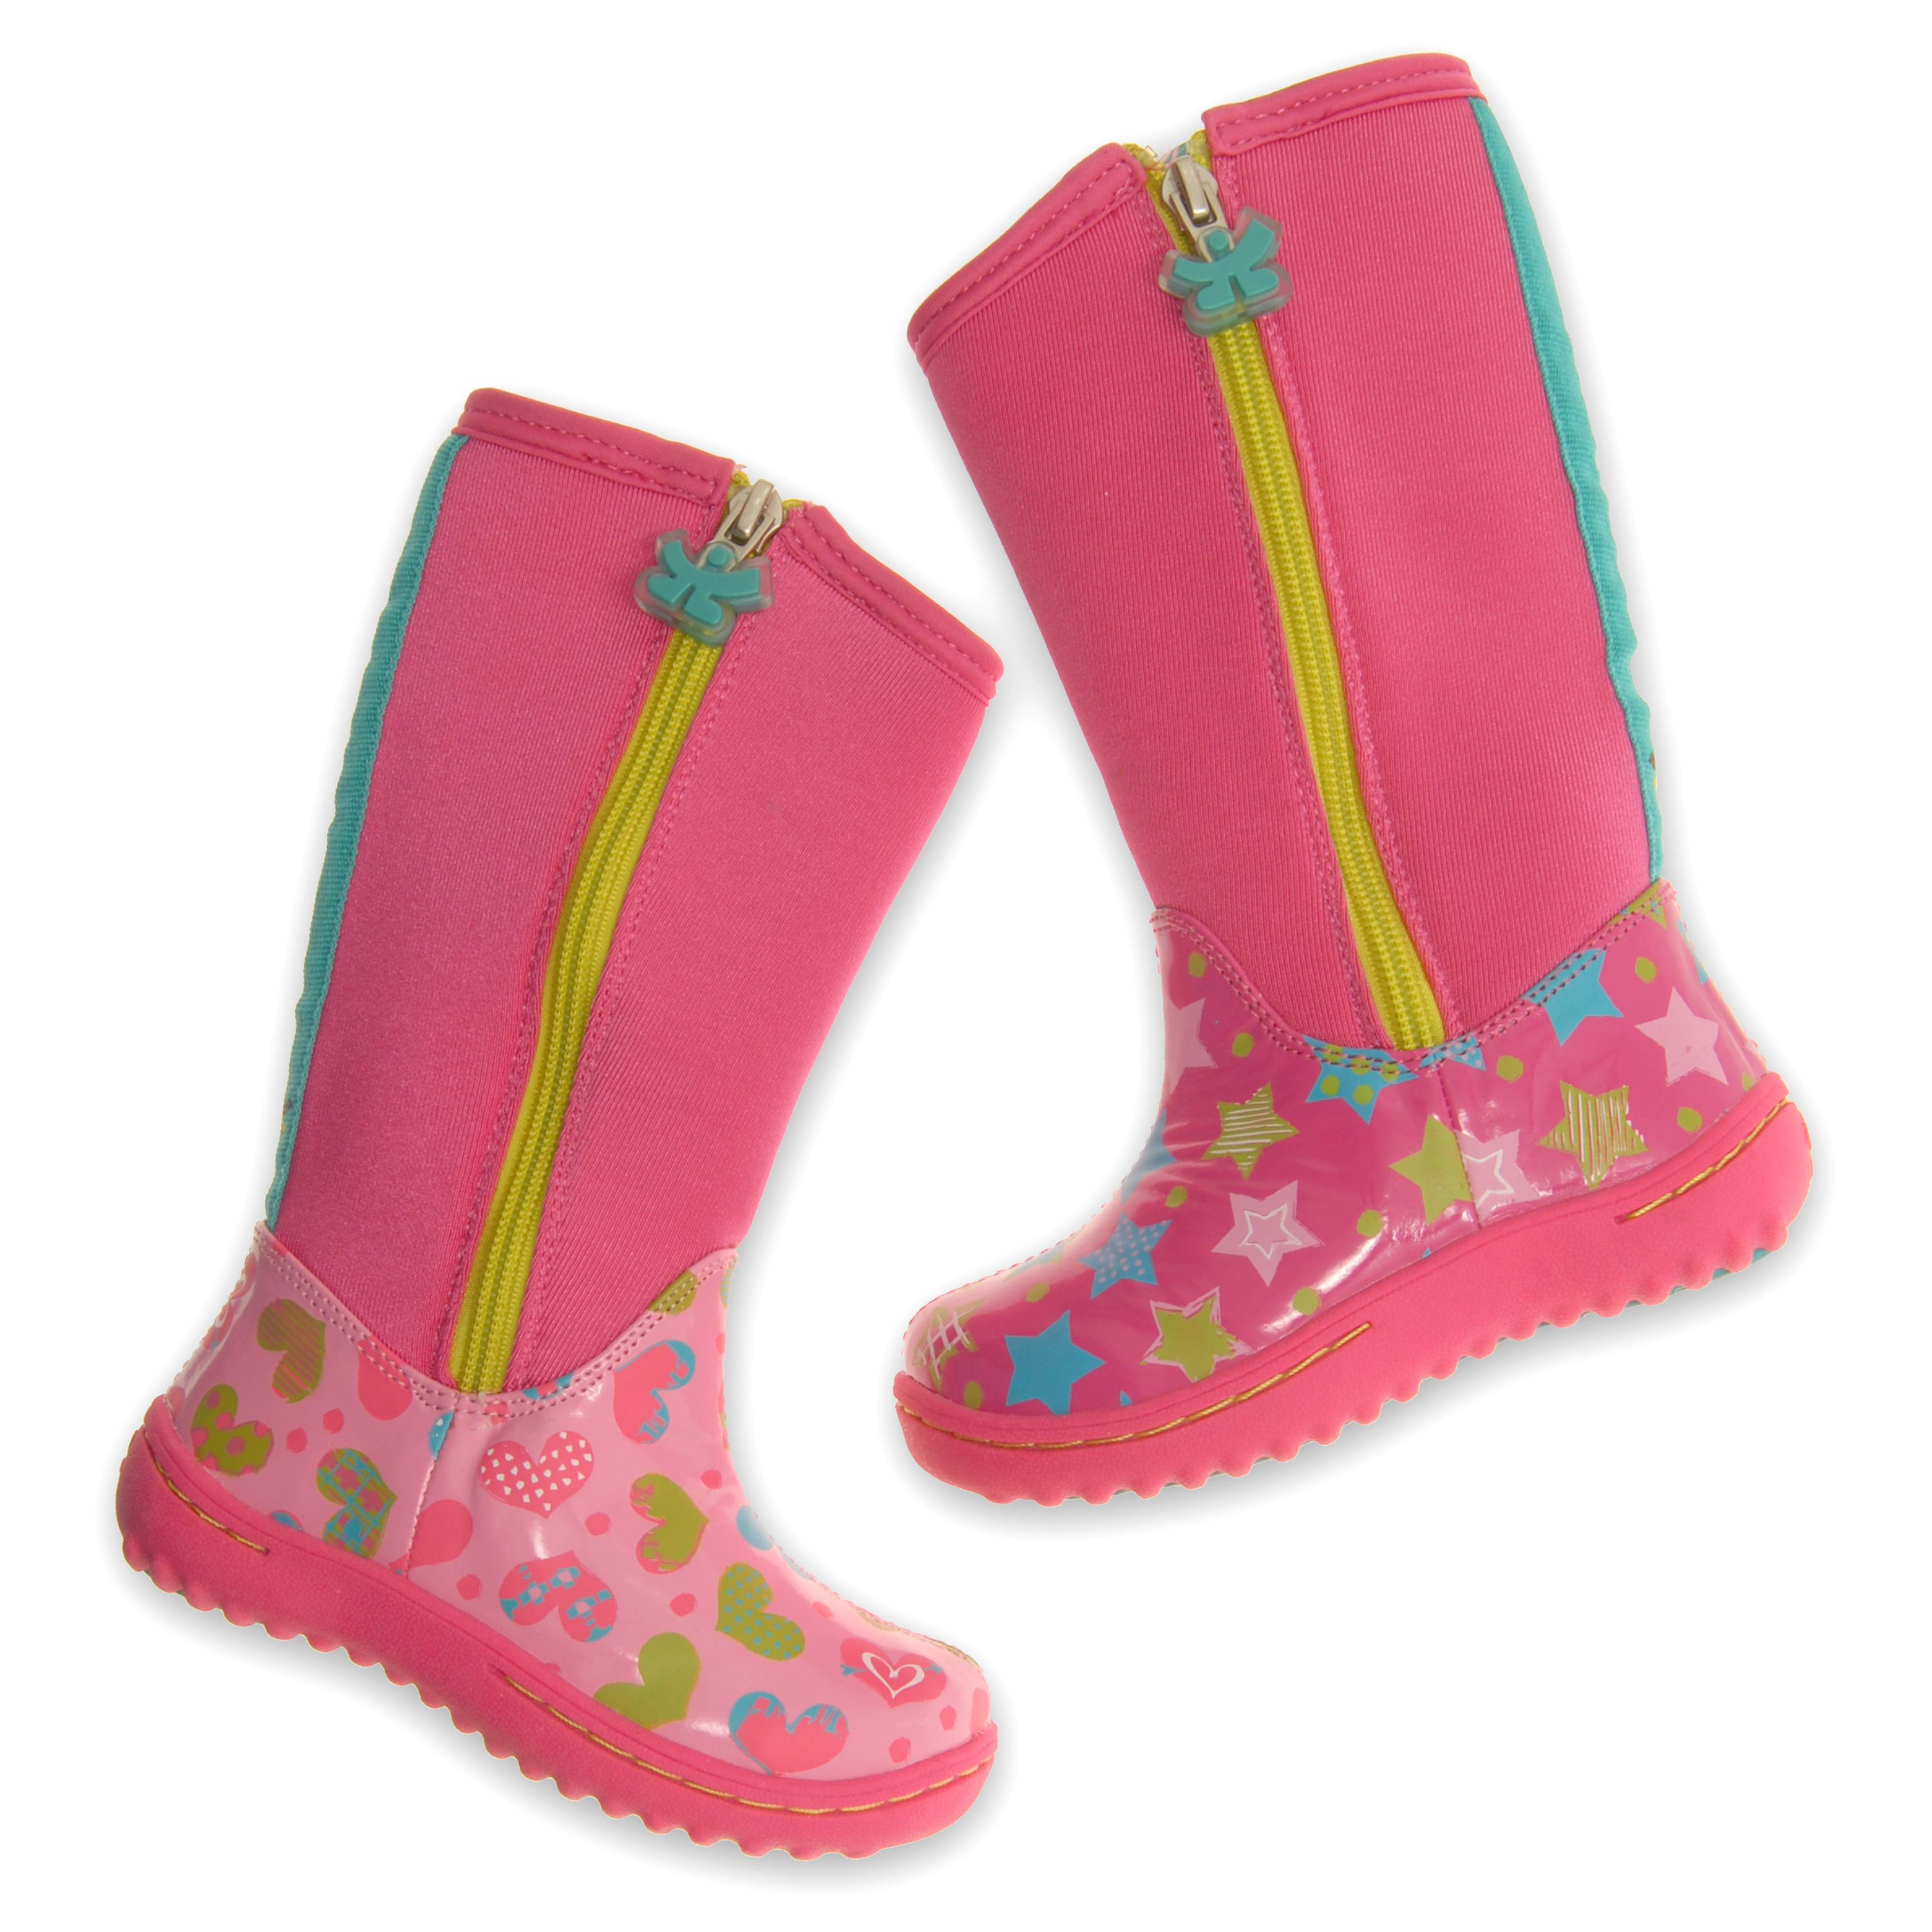 Our awesome Stomp boots in Celebrate prints #chooze #choozeshoes #boots #kidsboots #stomp